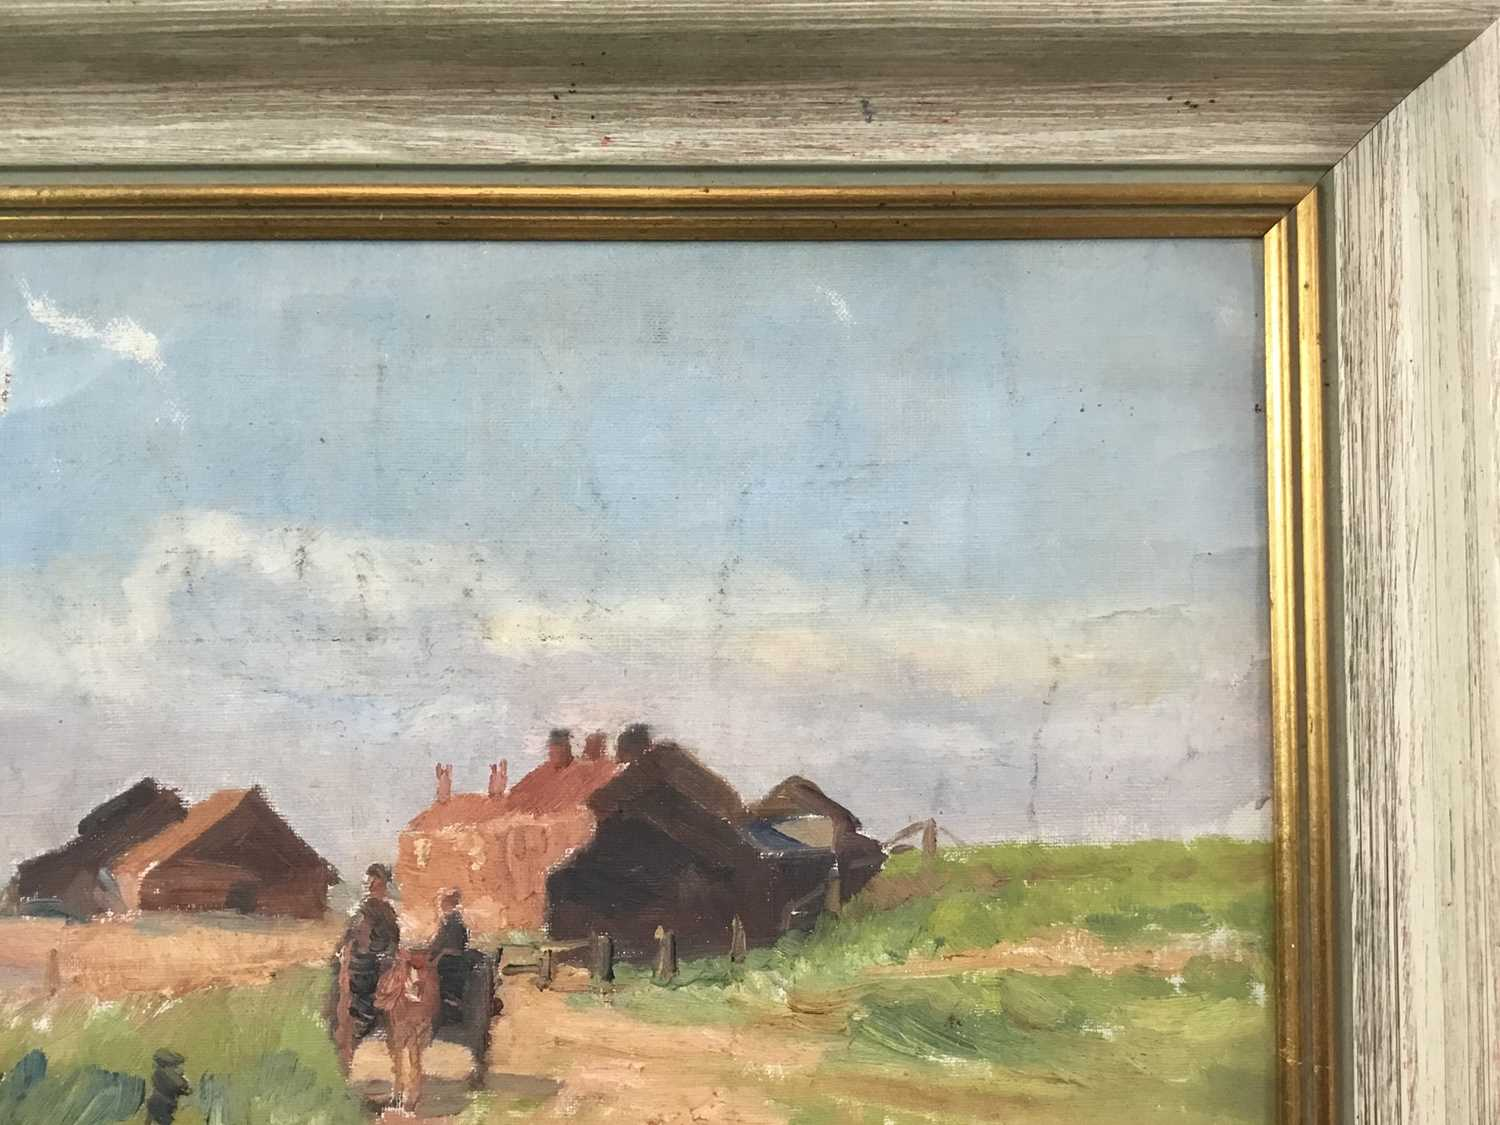 Robert G. D. Alexander (1875-1945) oil on canvas laid on board - Kirby Quay, Essex, with Carters Mil - Image 7 of 9